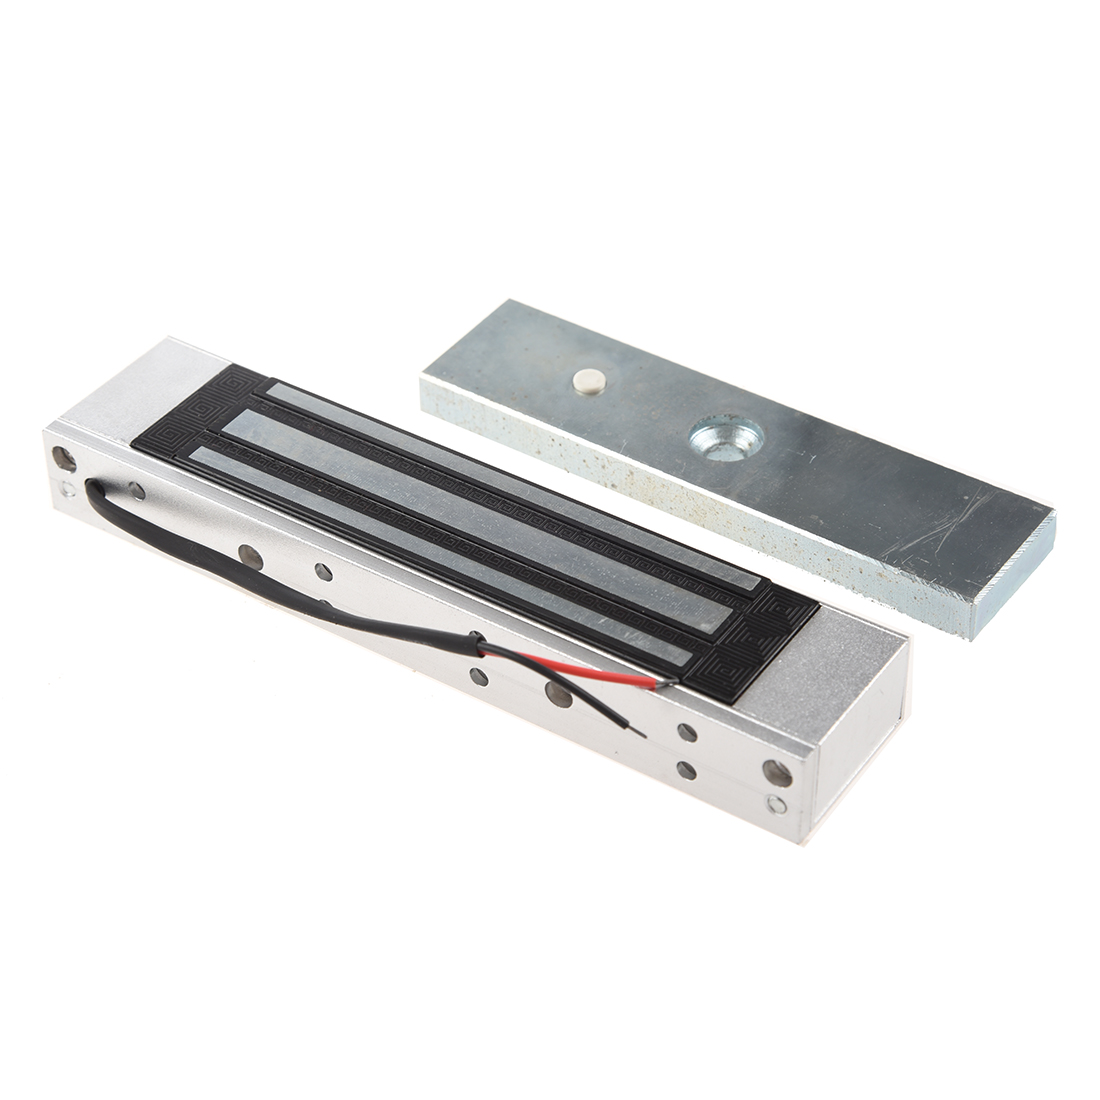 MOOL Single Door 12V Electric Magnetic Electromagnetic Lock 180KG (350LB) Holding Force For Access Control Silver